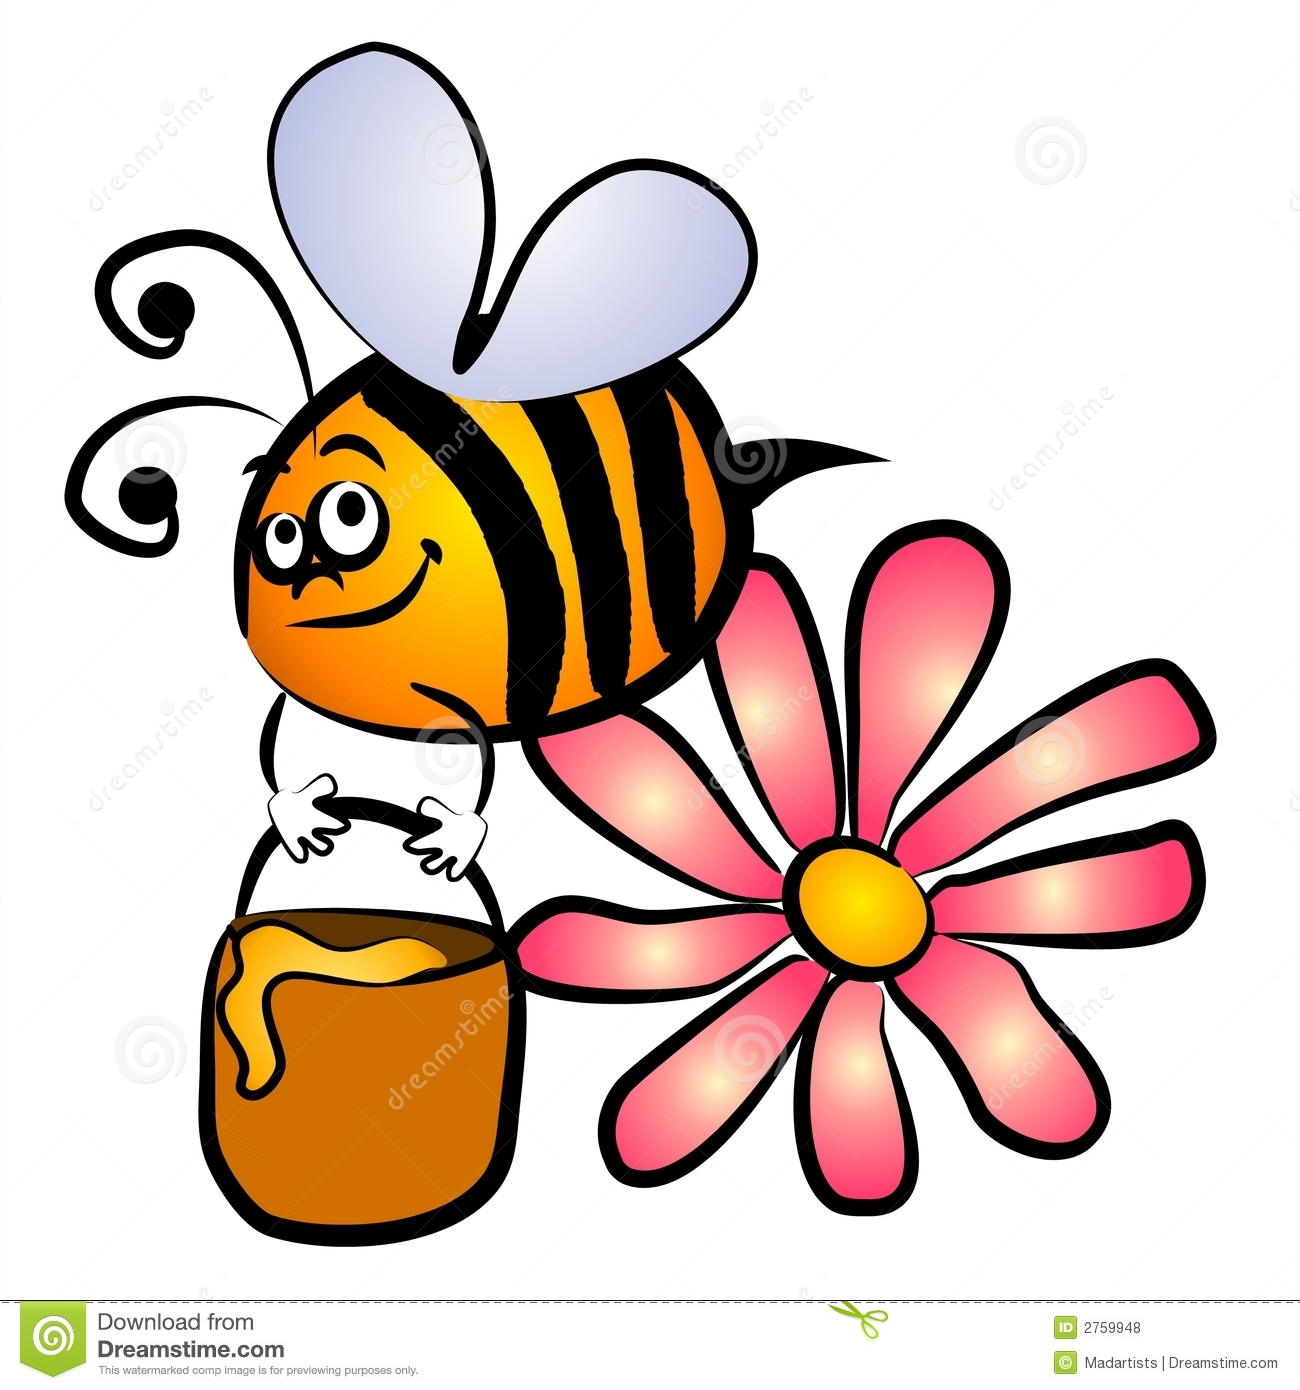 Bee Cartoon Clipart - Clipart Kid